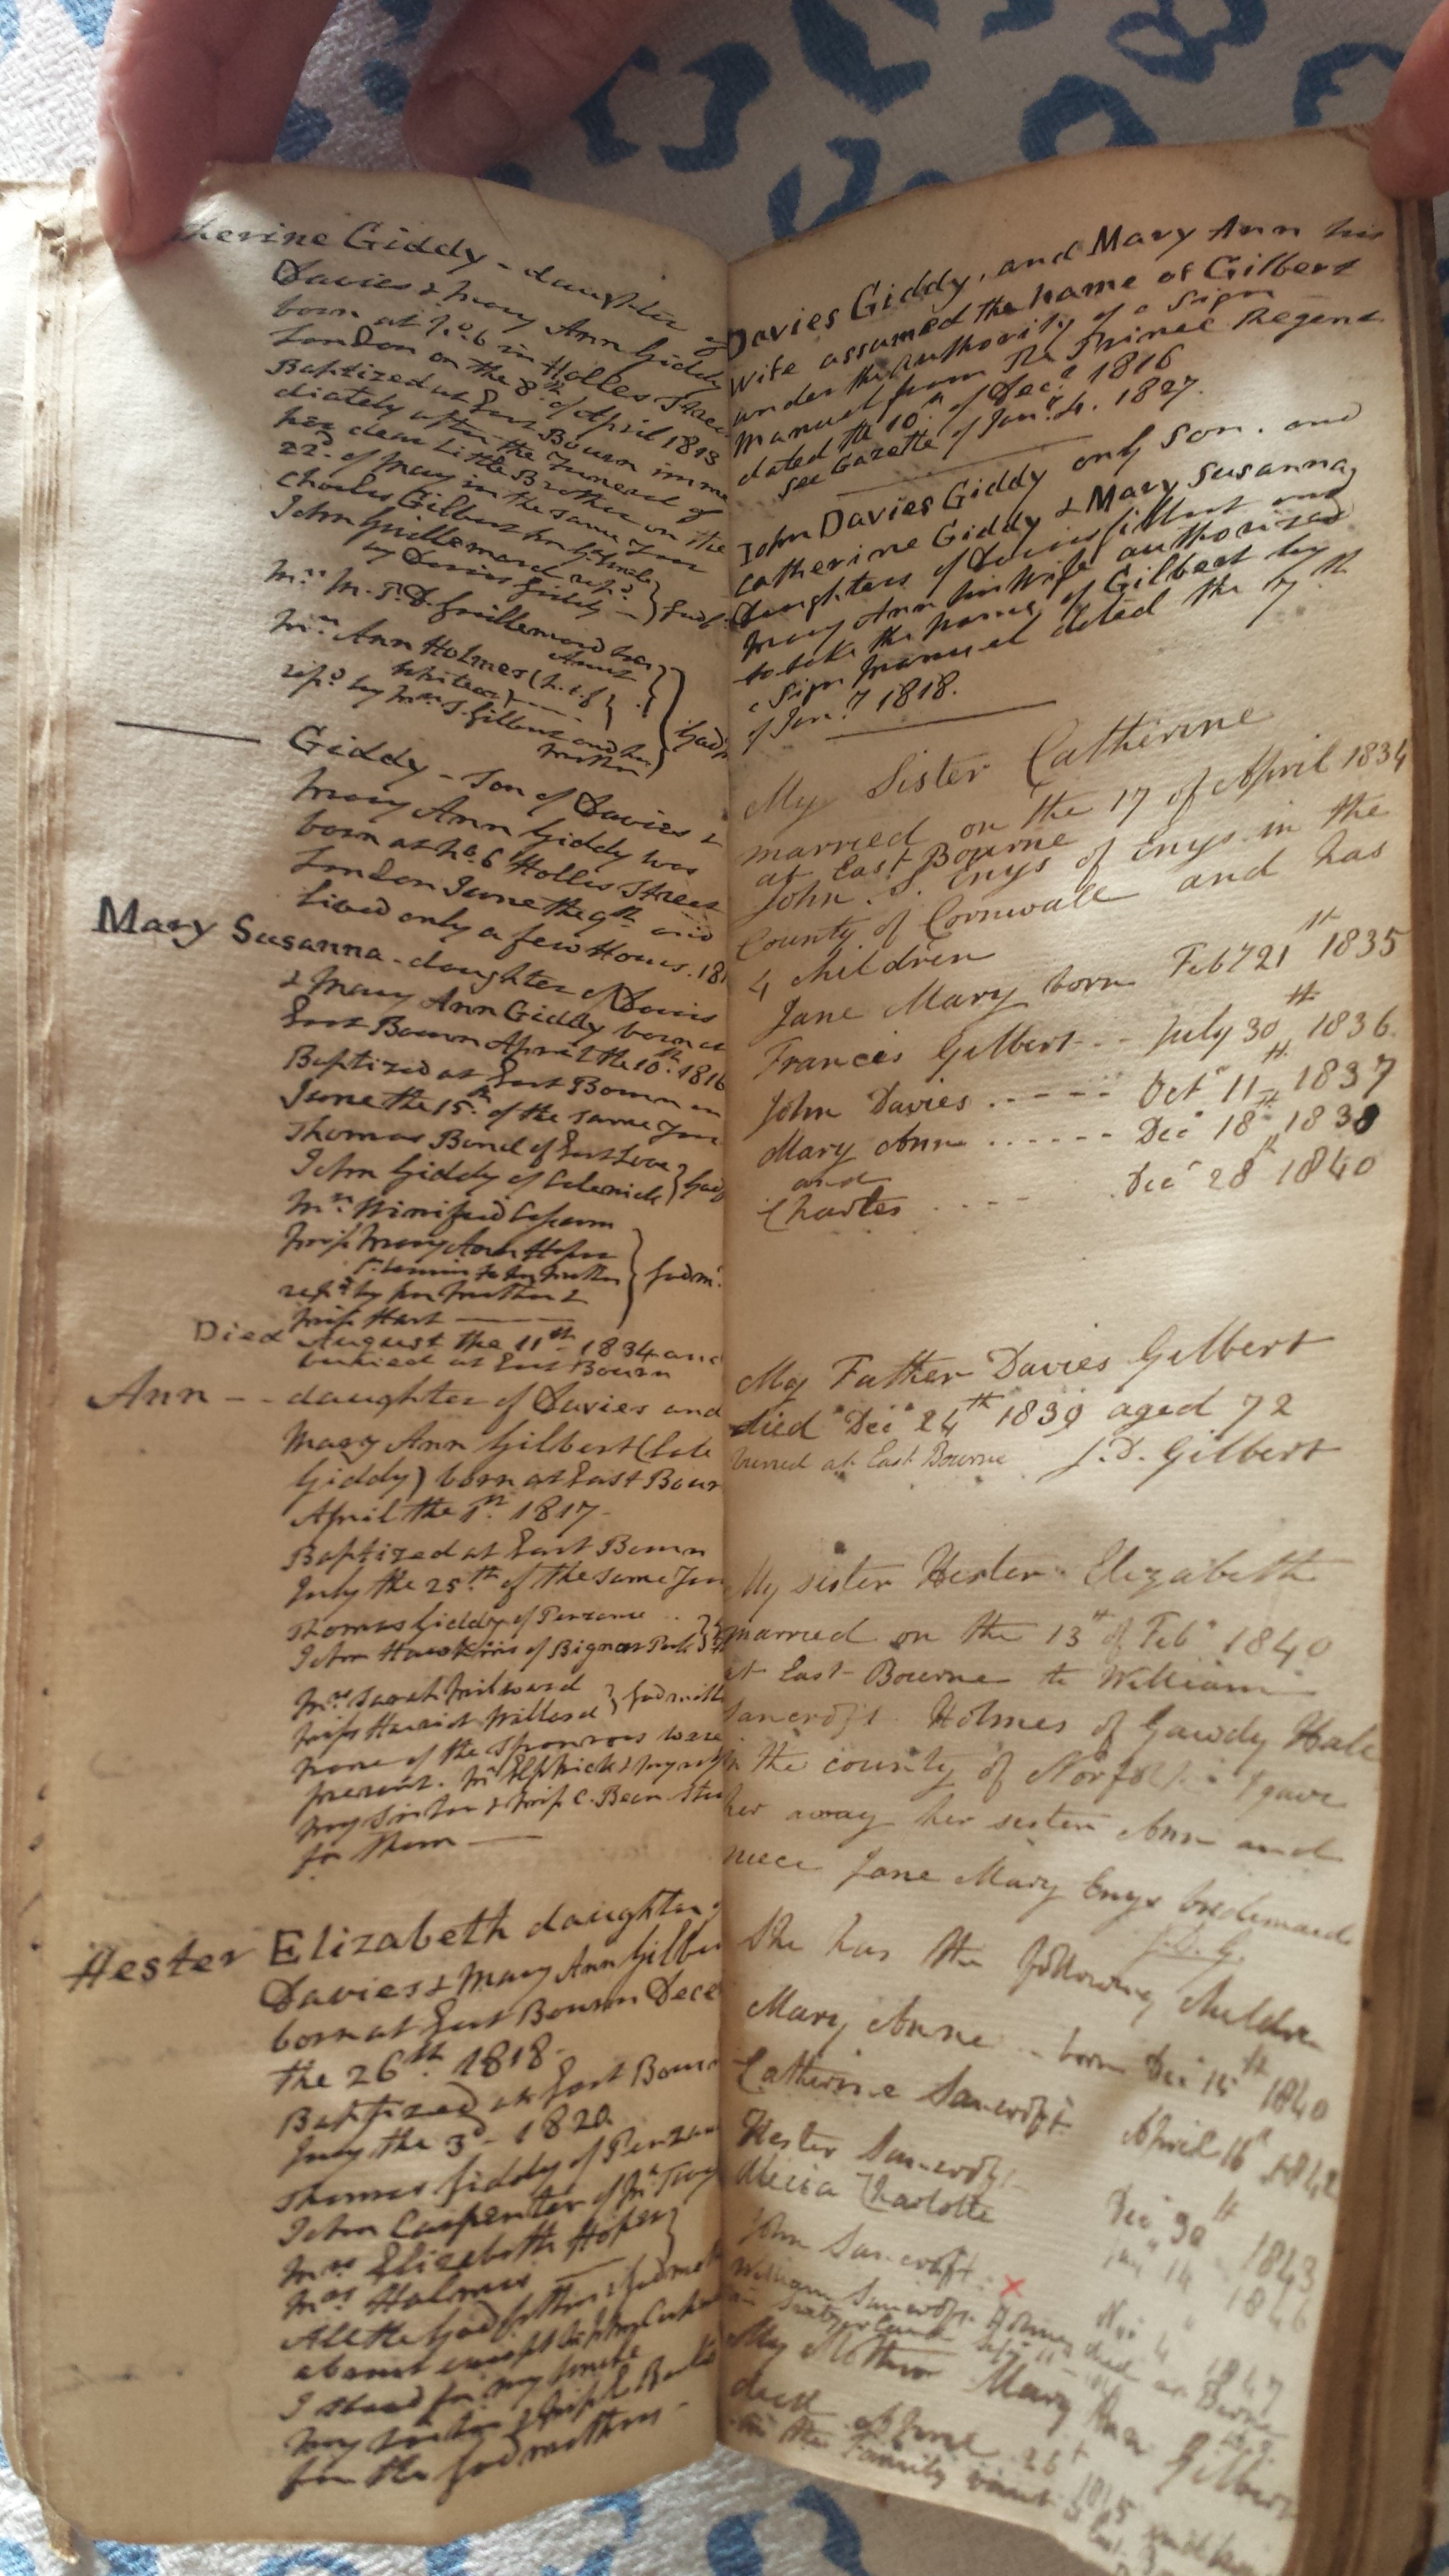 Leatherbound family book of records